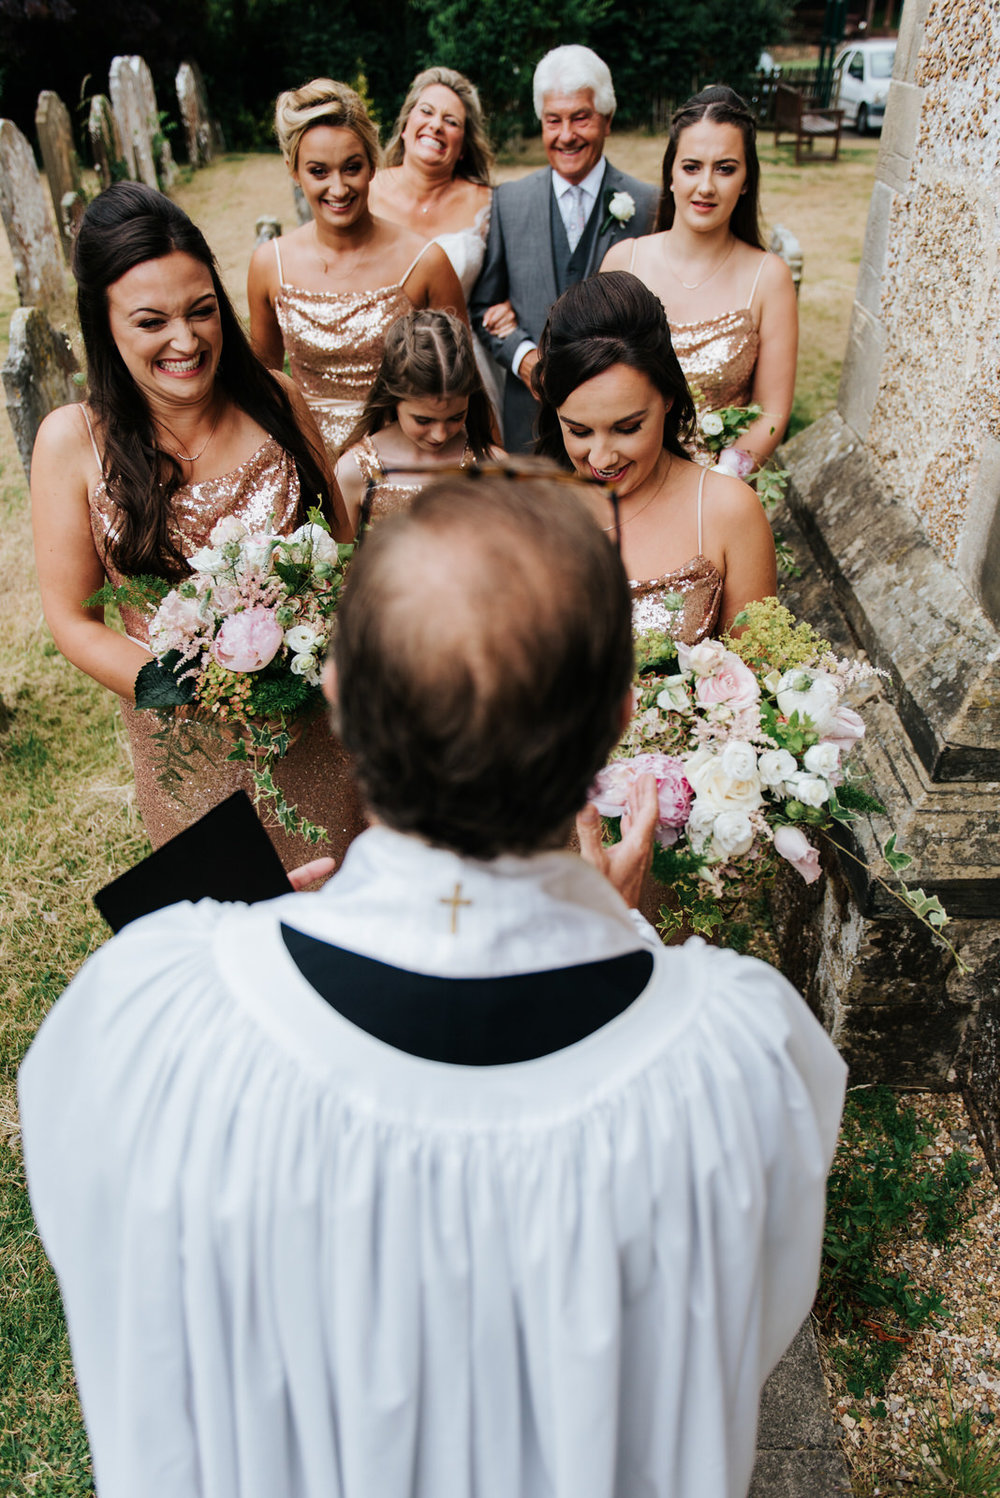 Vicar speaks to bride and bridesmaids before they go into church